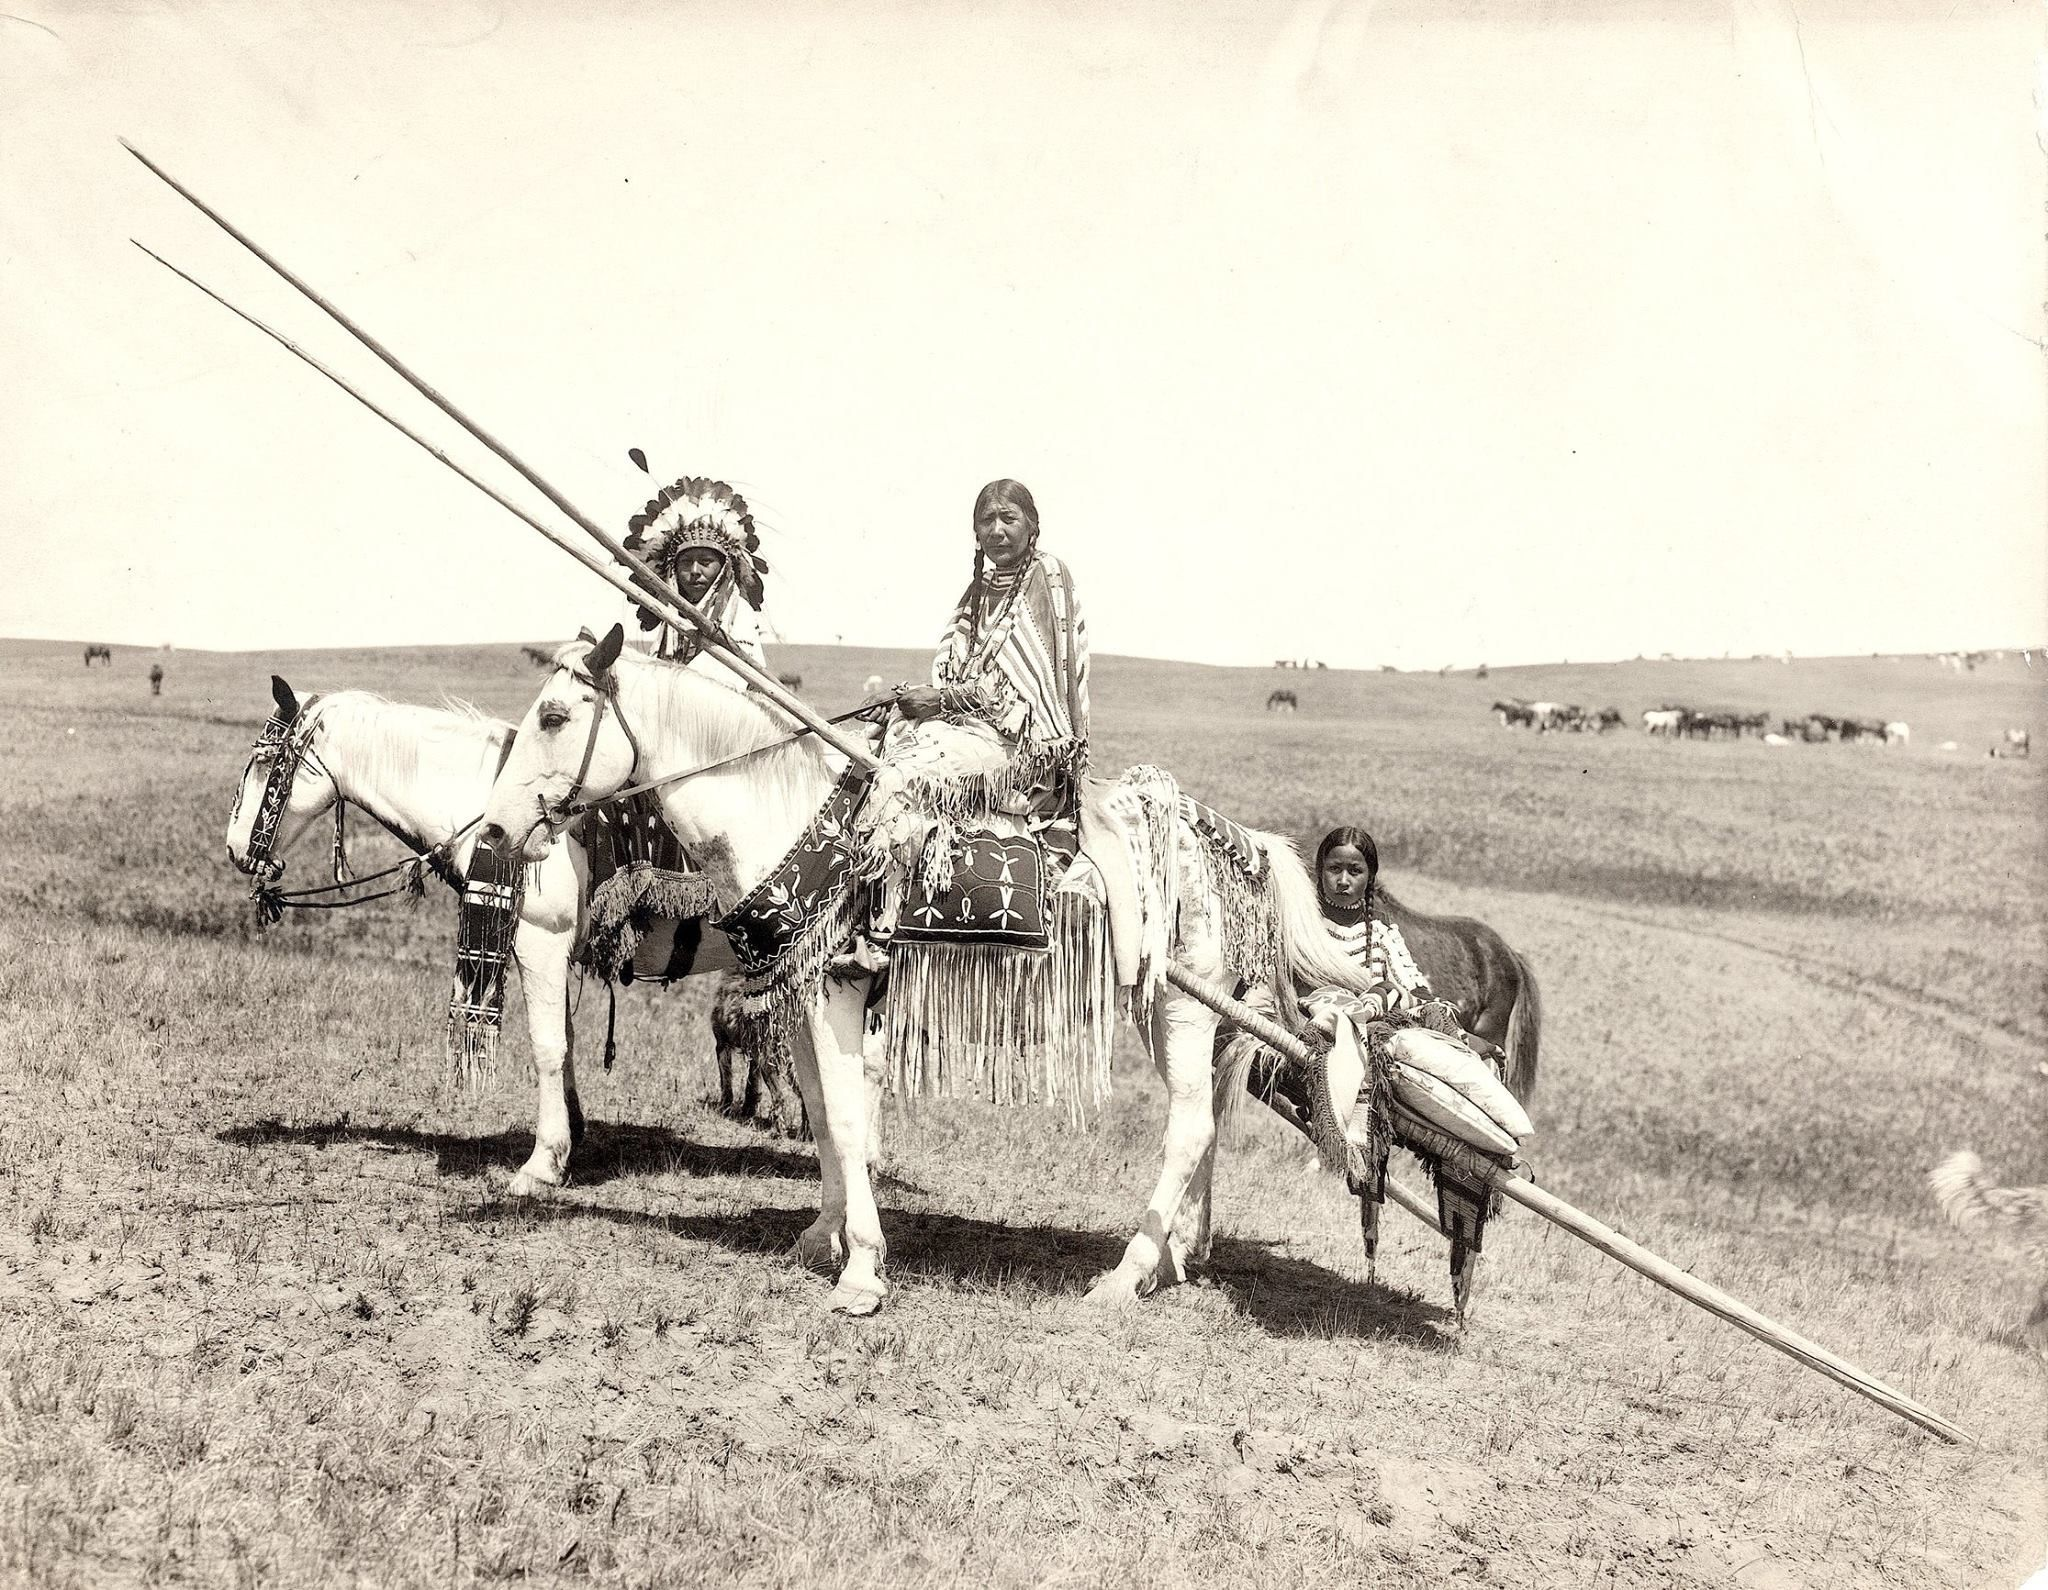 Pin on Blackfoot Family and Groups